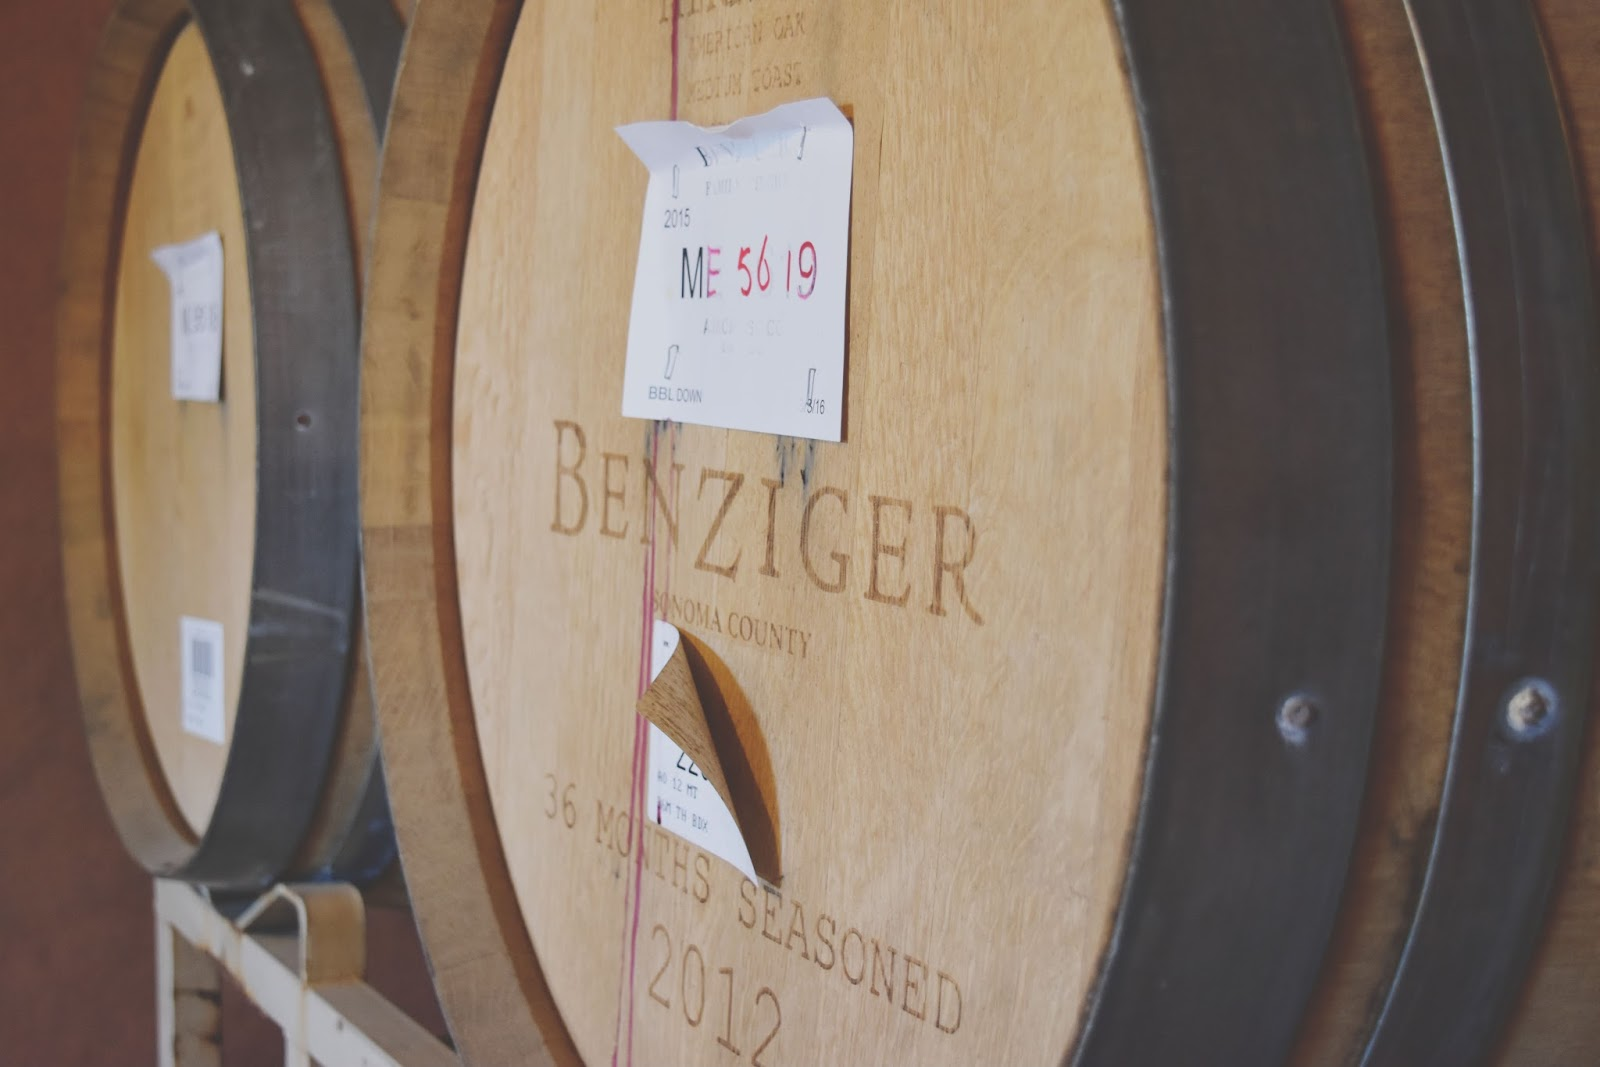 Benziger - a winery in Sonoma, California